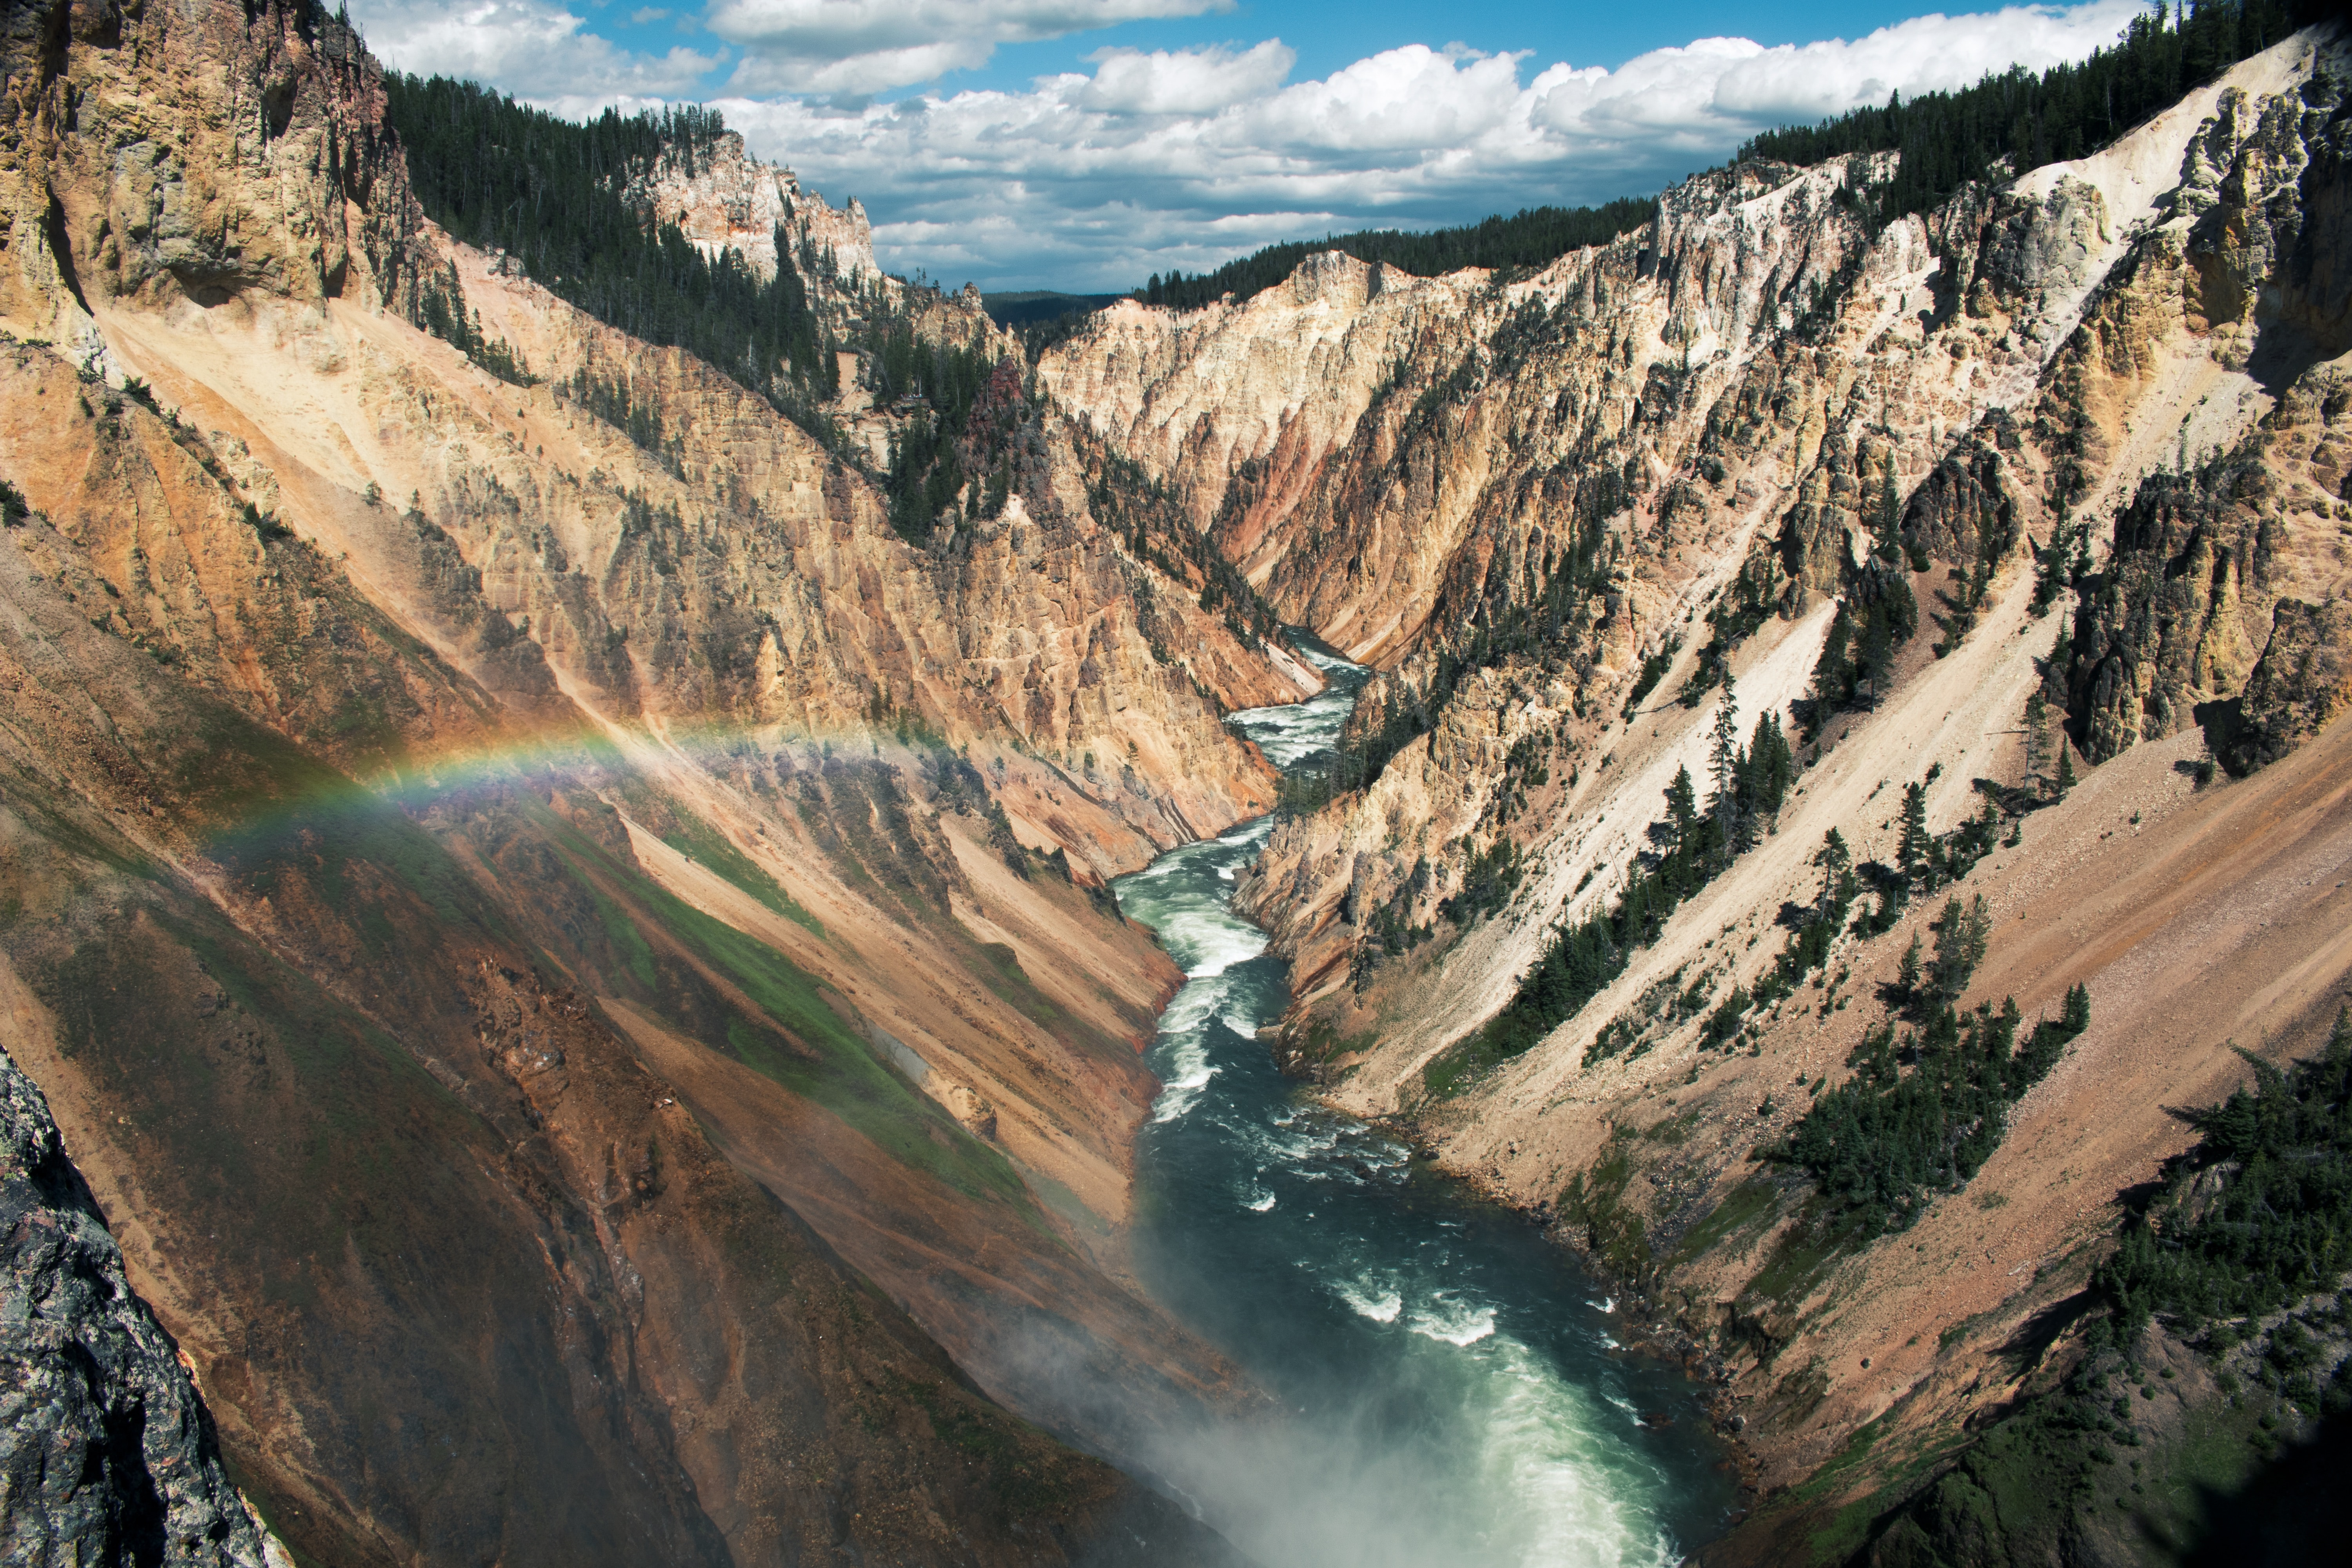 A river in a mountain gorge with a rainbow